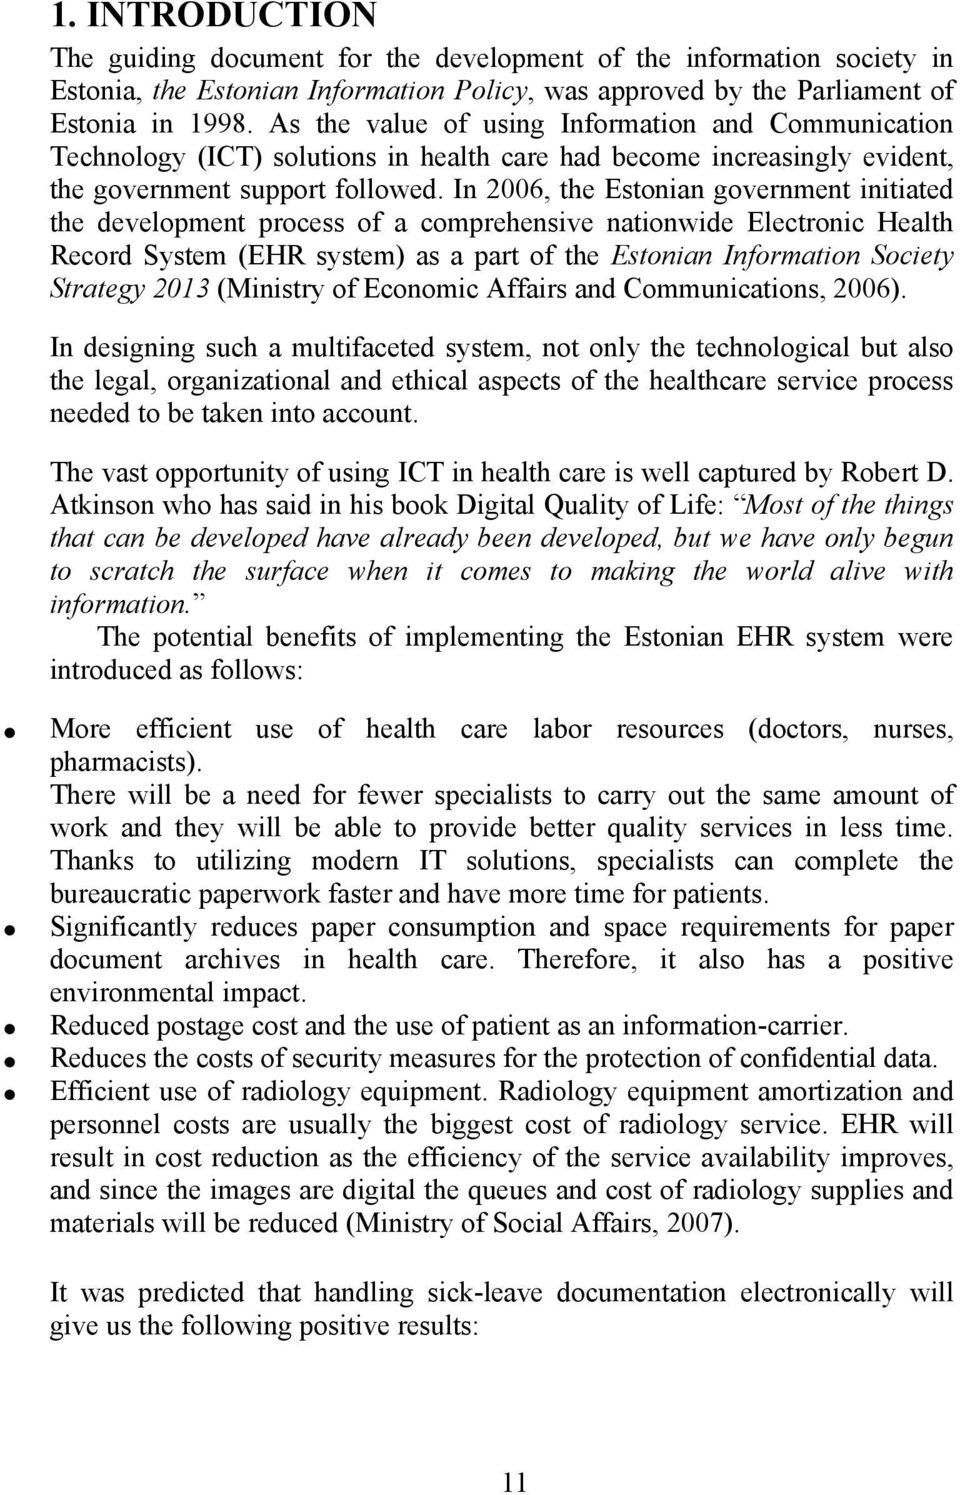 In 2006, the Estonian government initiated the development process of a comprehensive nationwide Electronic Health Record System (EHR system) as a part of the Estonian Information Society Strategy